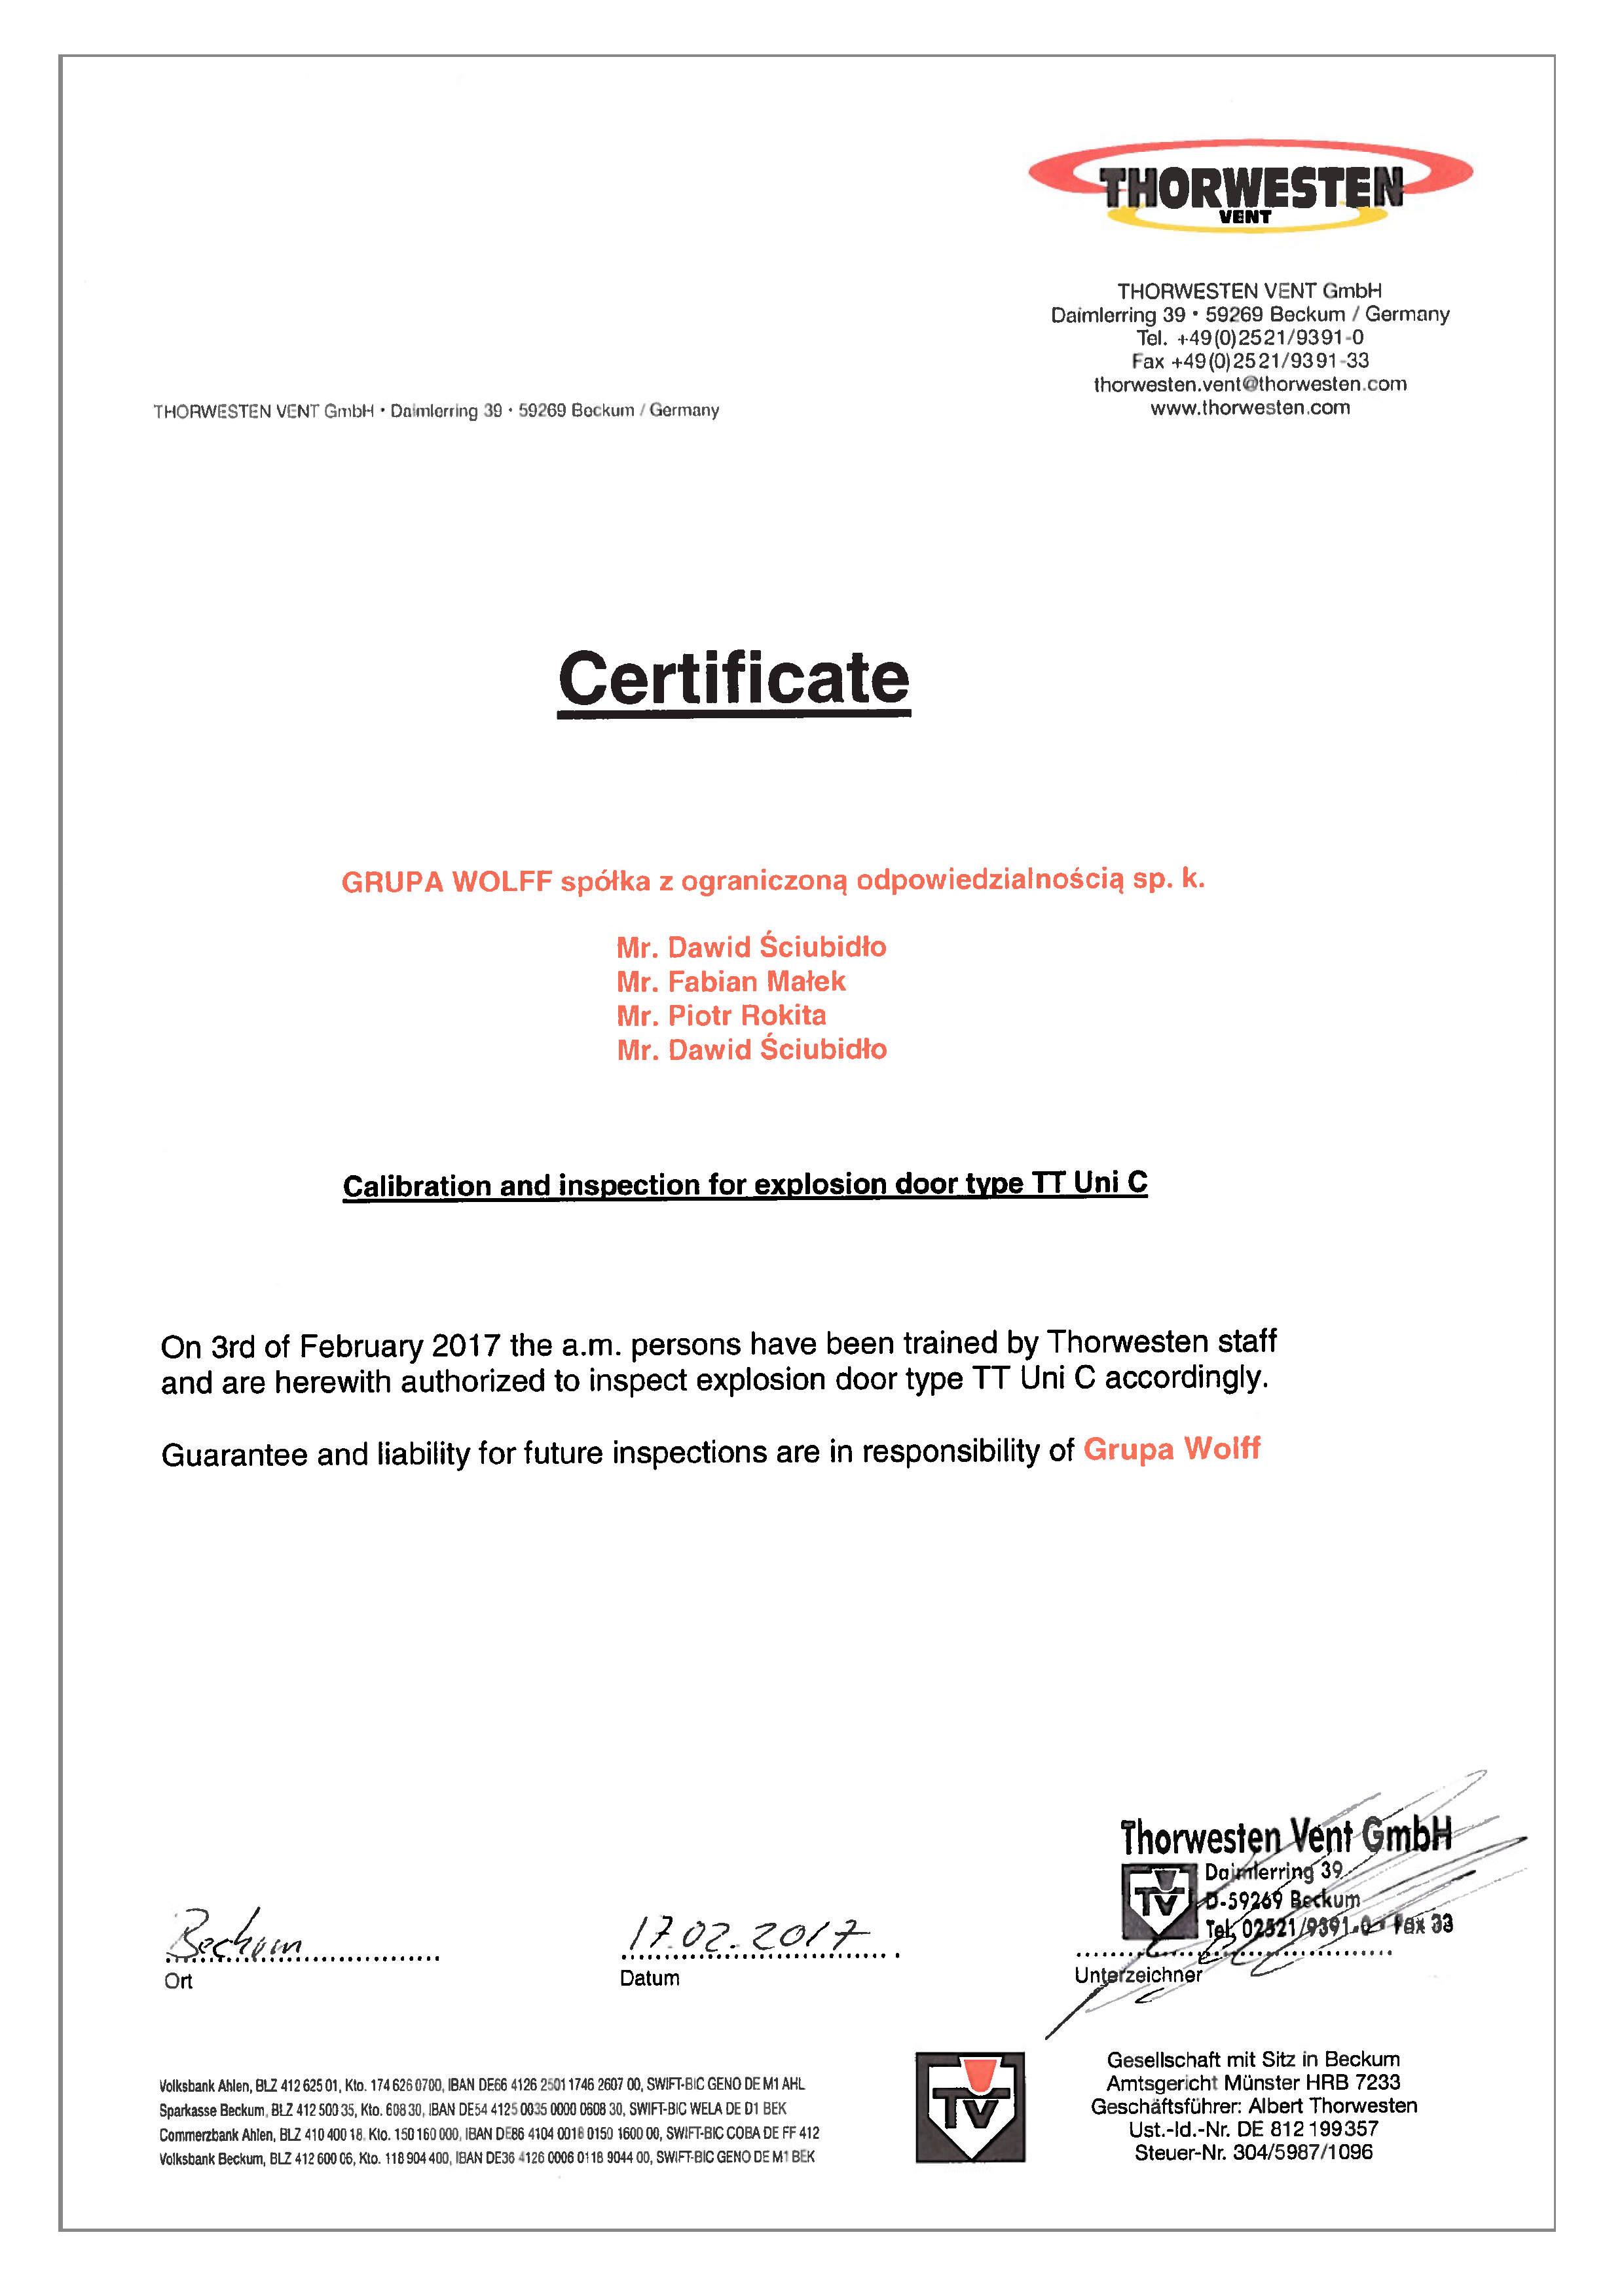 service certificate for new type of explosion doors wolff group